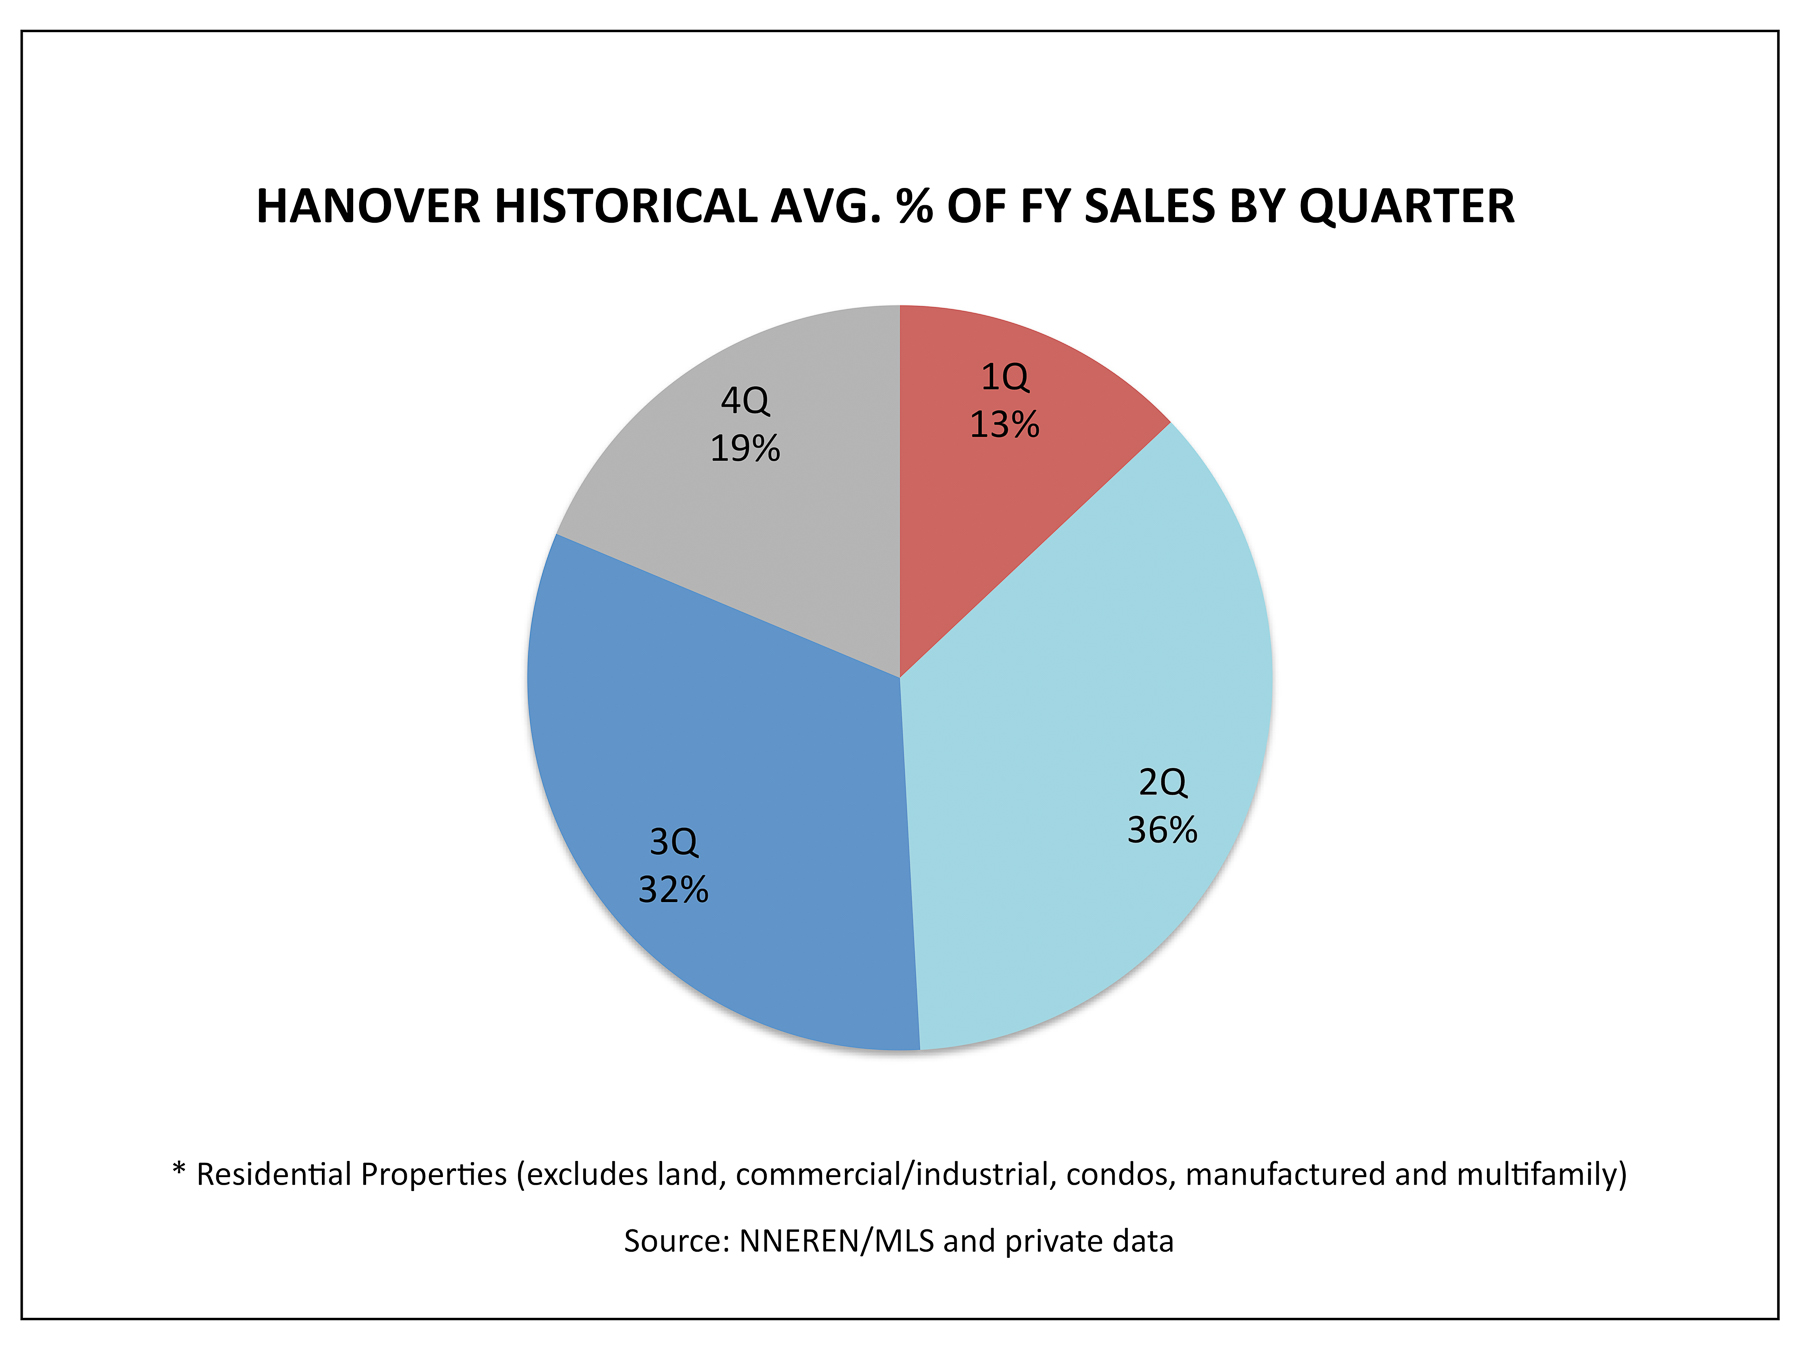 Hanover NH Real Estate - 1Q Historical Avg % Homes Sold by Quarter